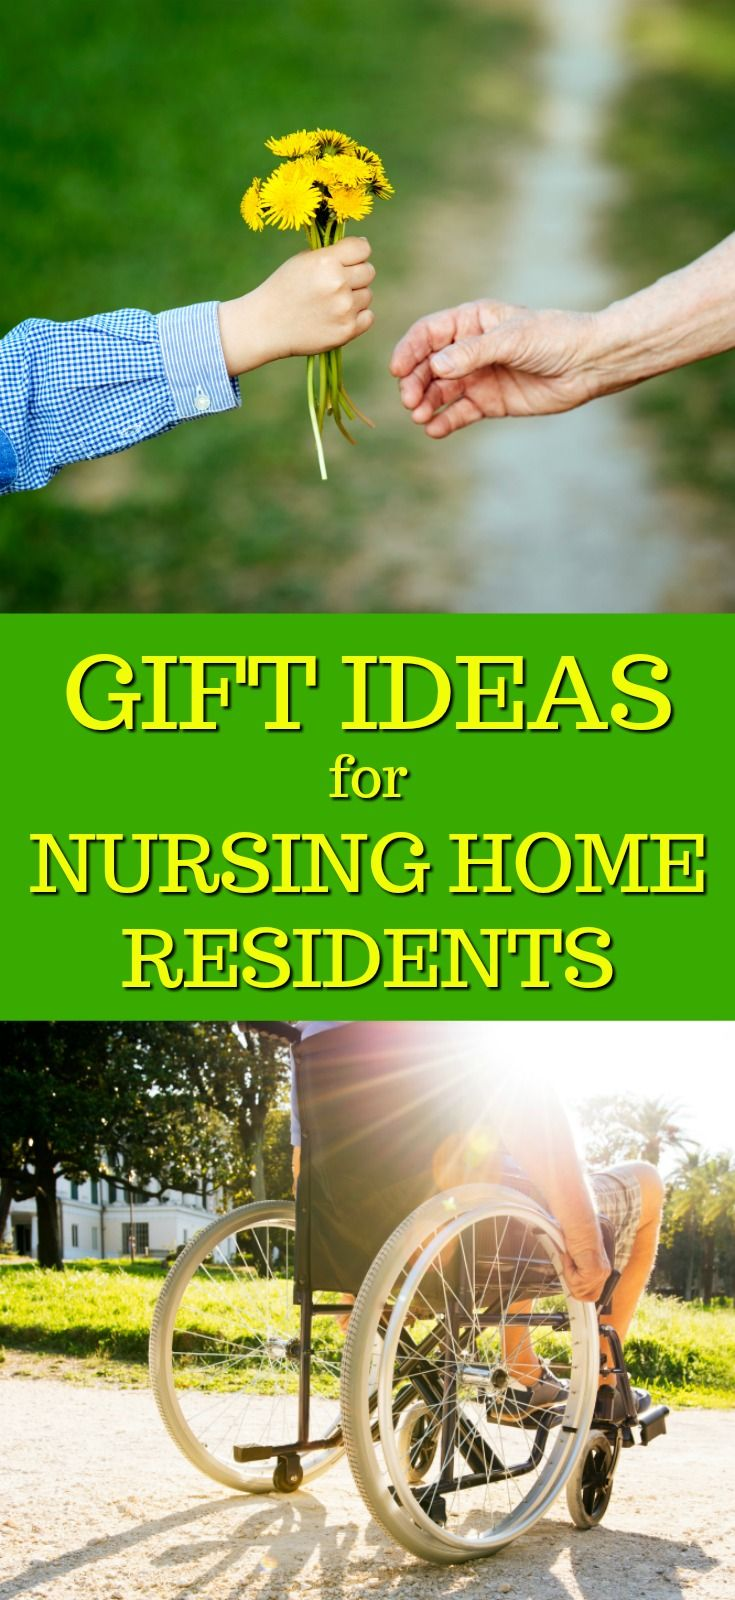 Gift ideas for nursing home residents with images